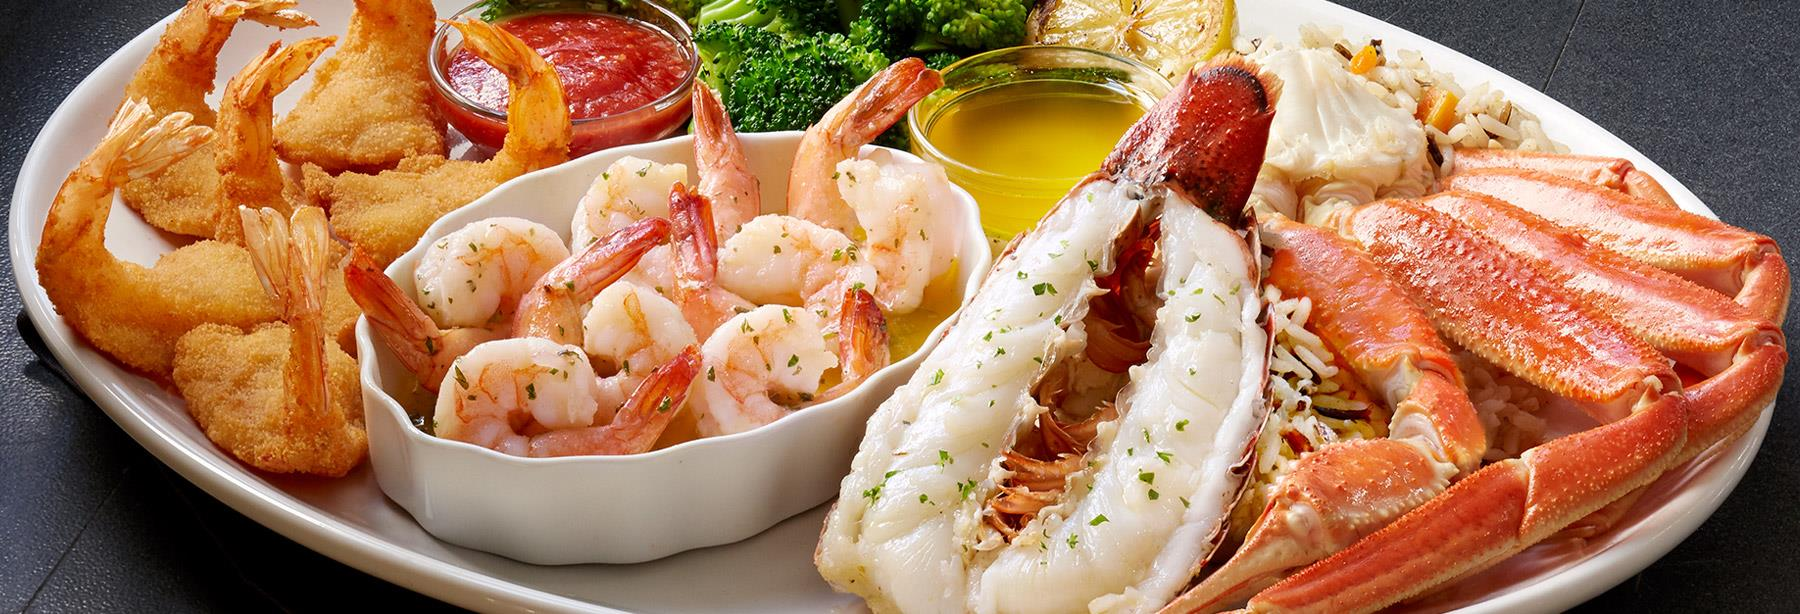 Prices For Red Lobster Menu And Prices For Lunch